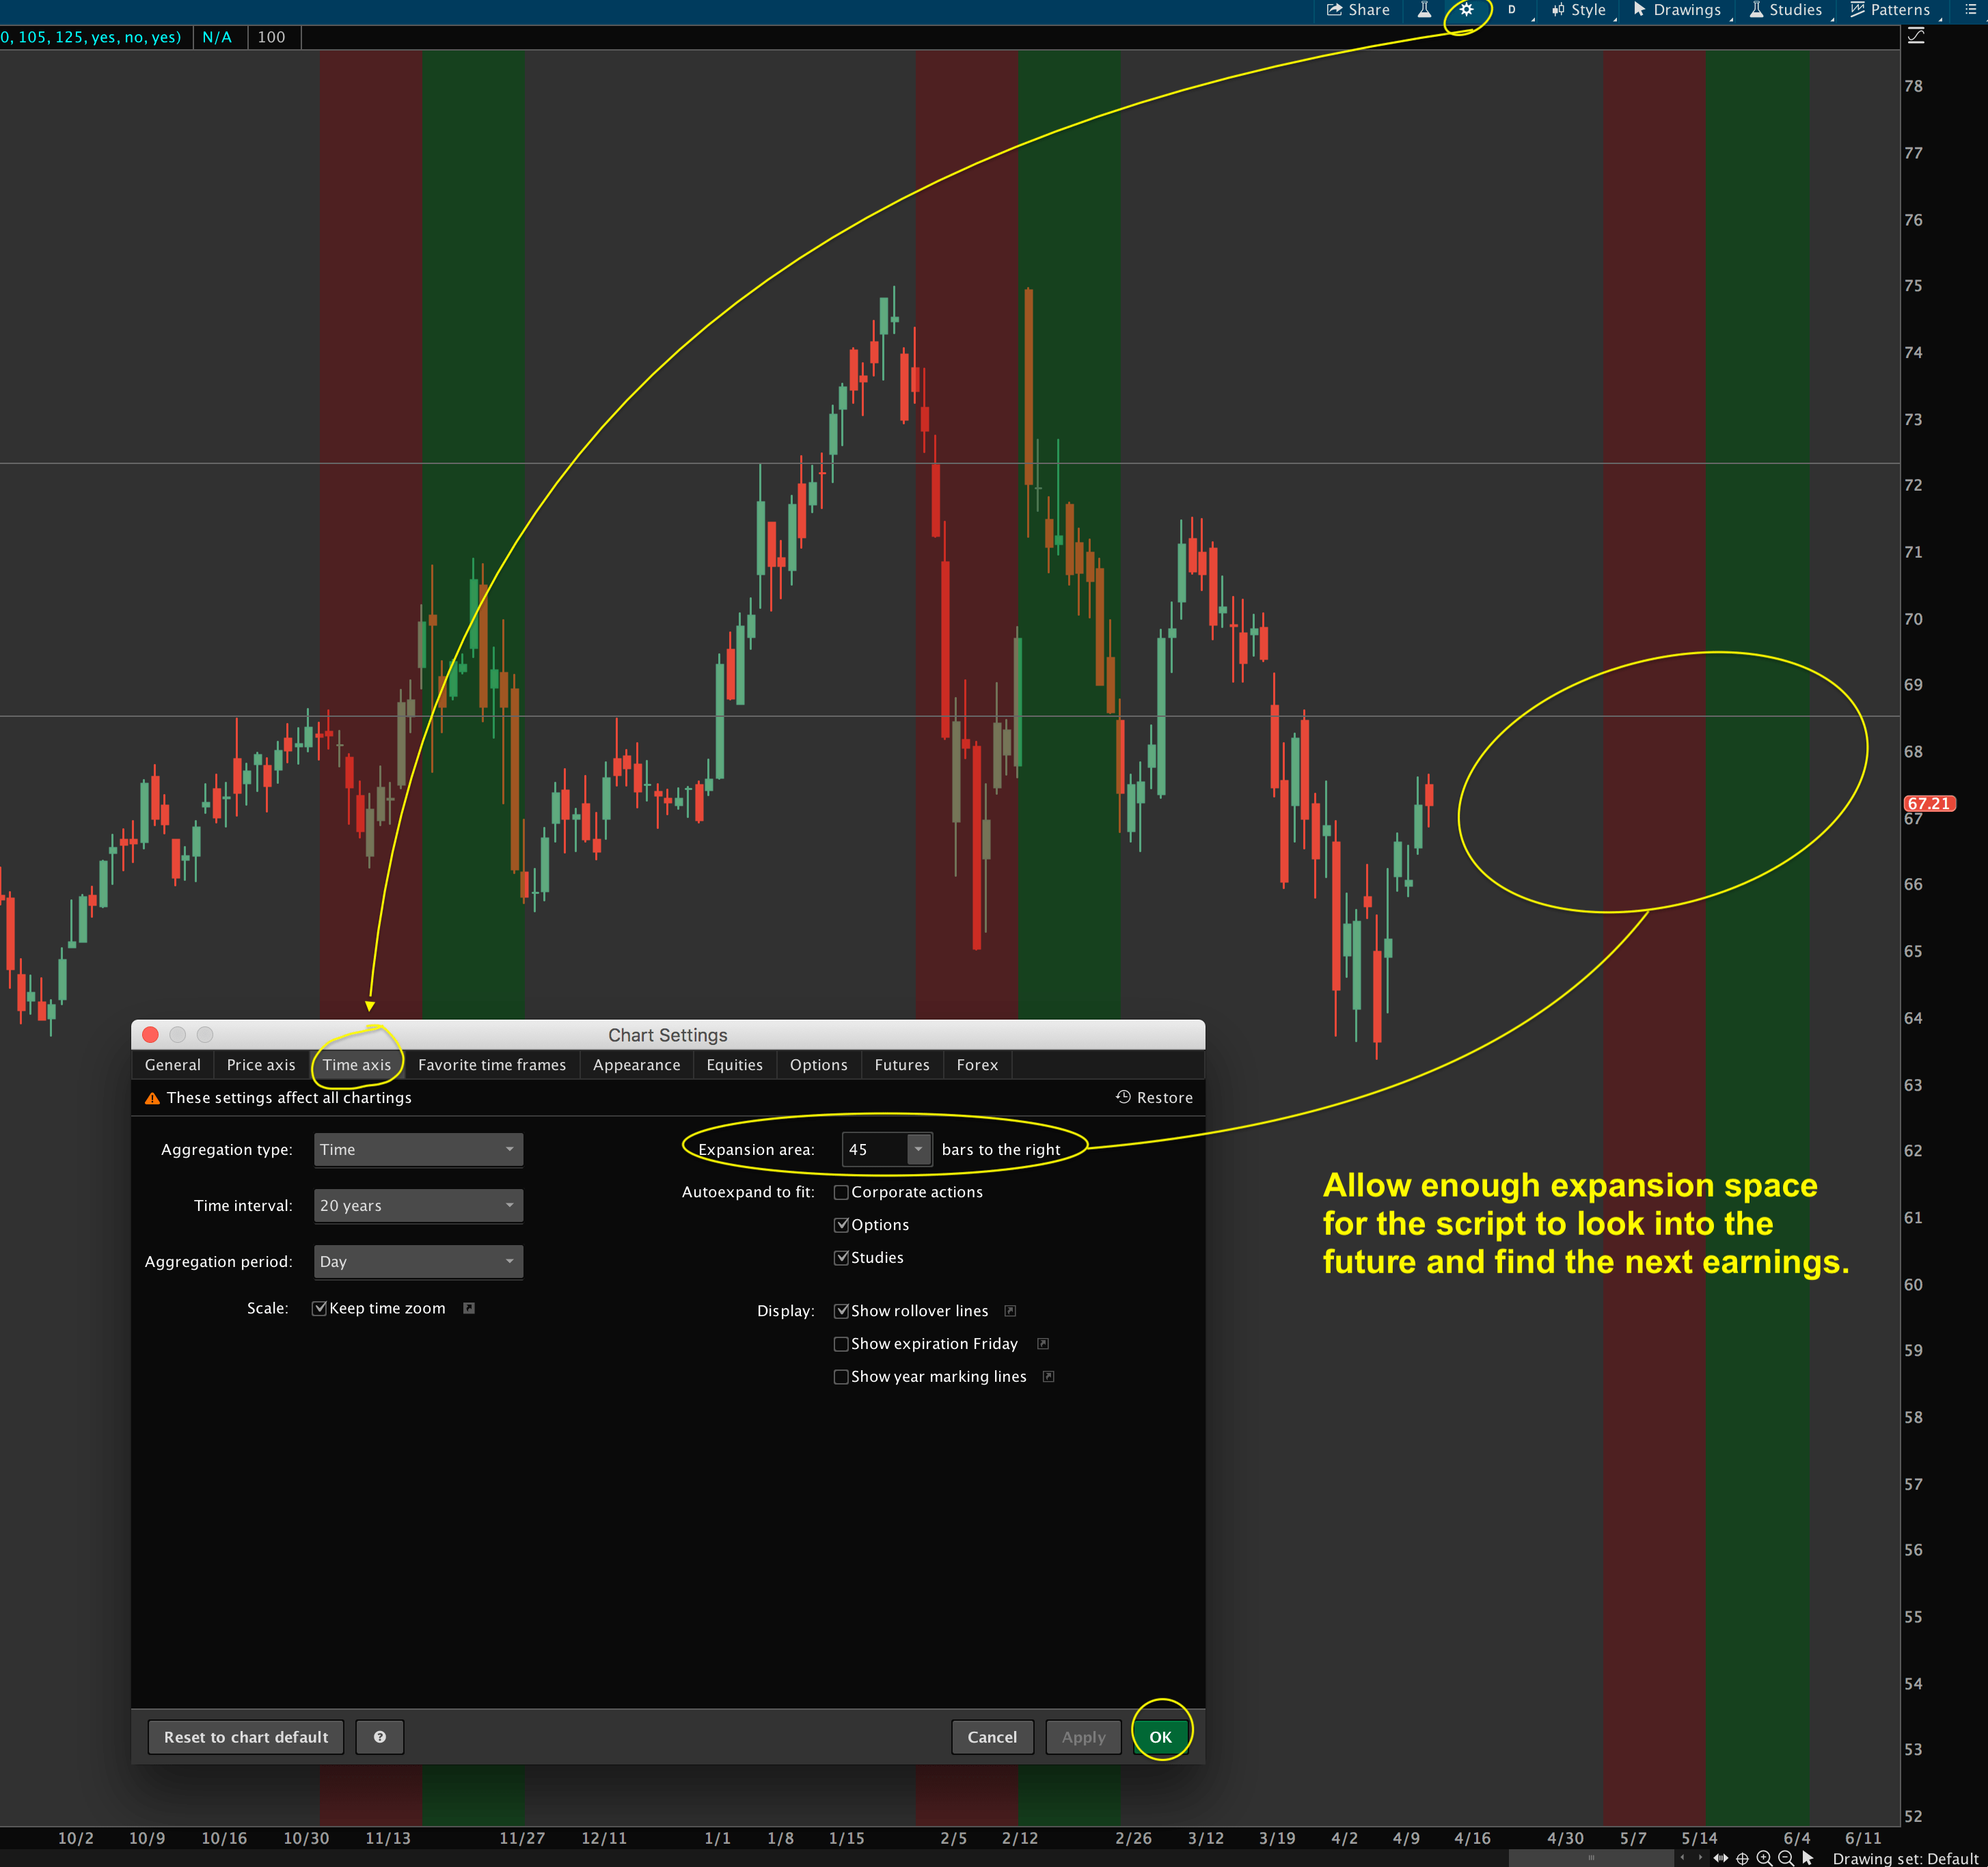 Thinkorswim Earnings Tool - Next Earnings Date & Countdown Indicator